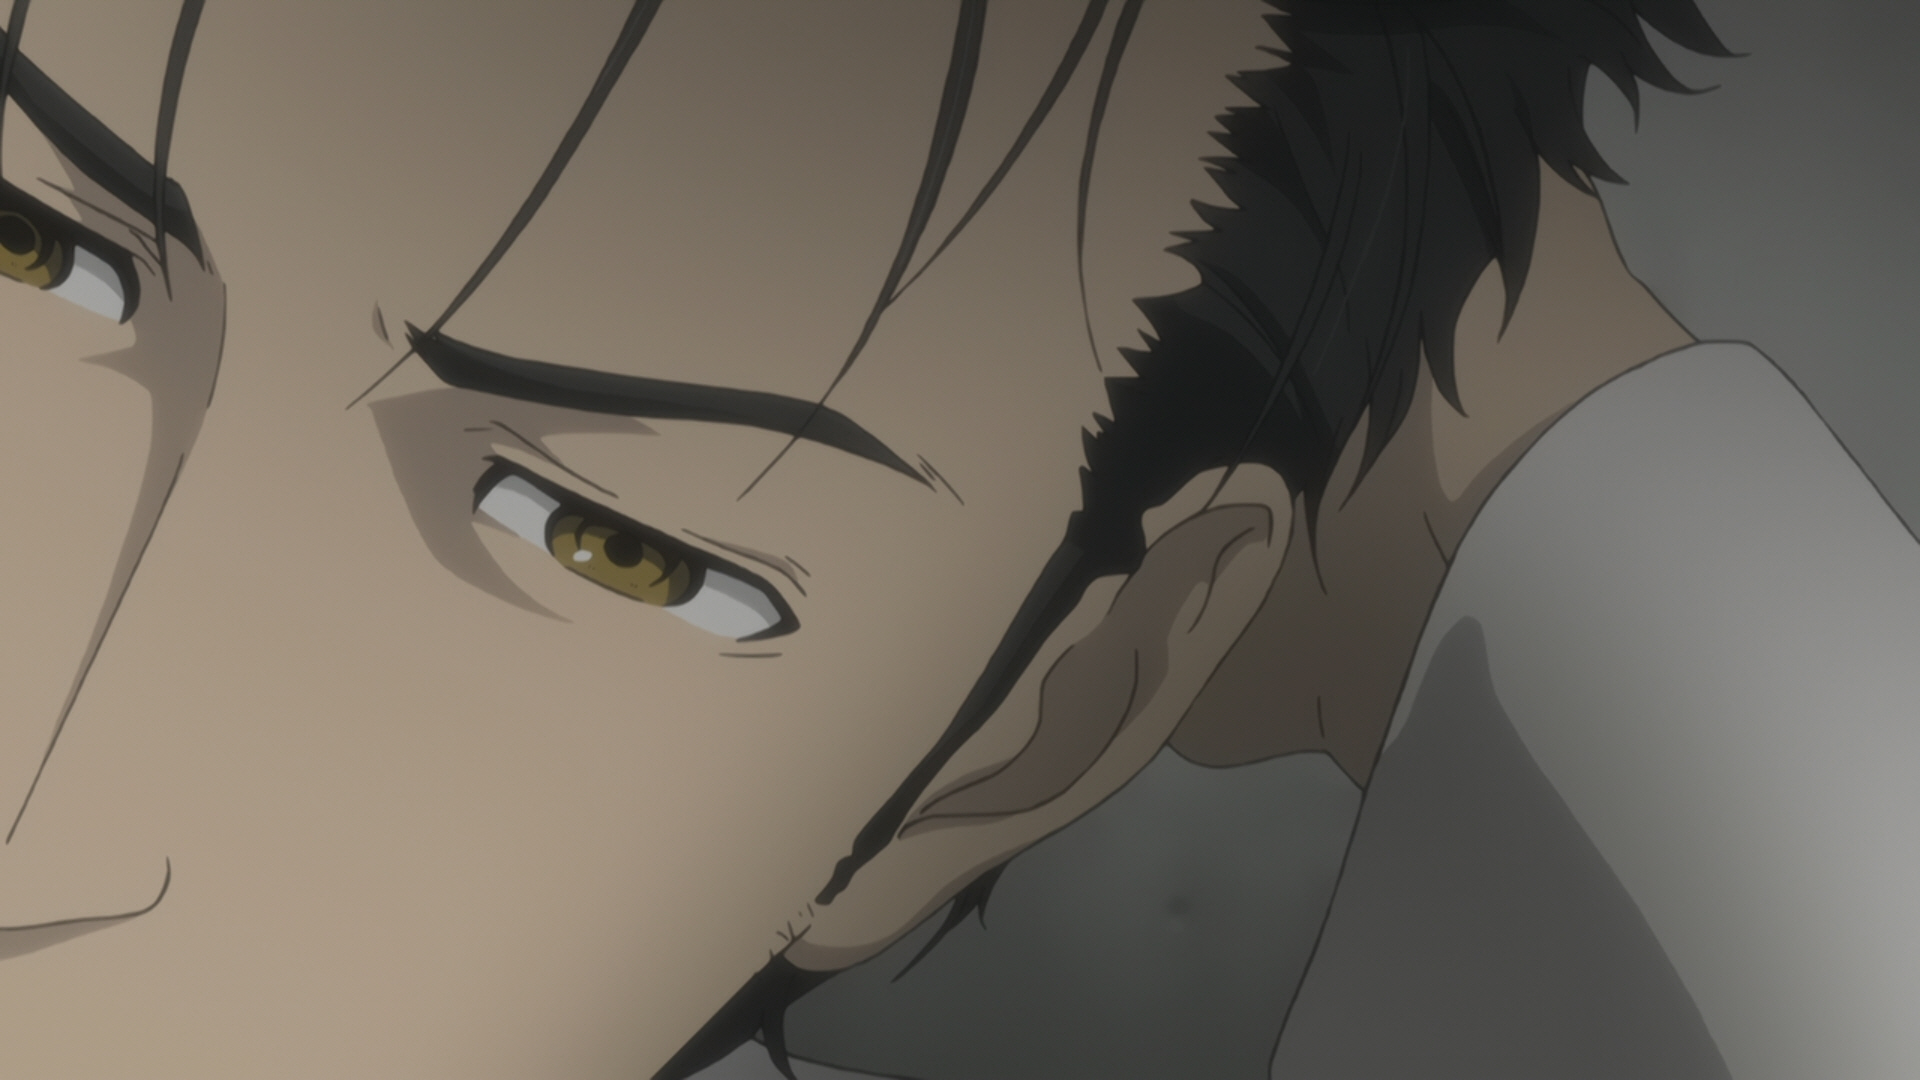 Steins;Gate Episode 3 010